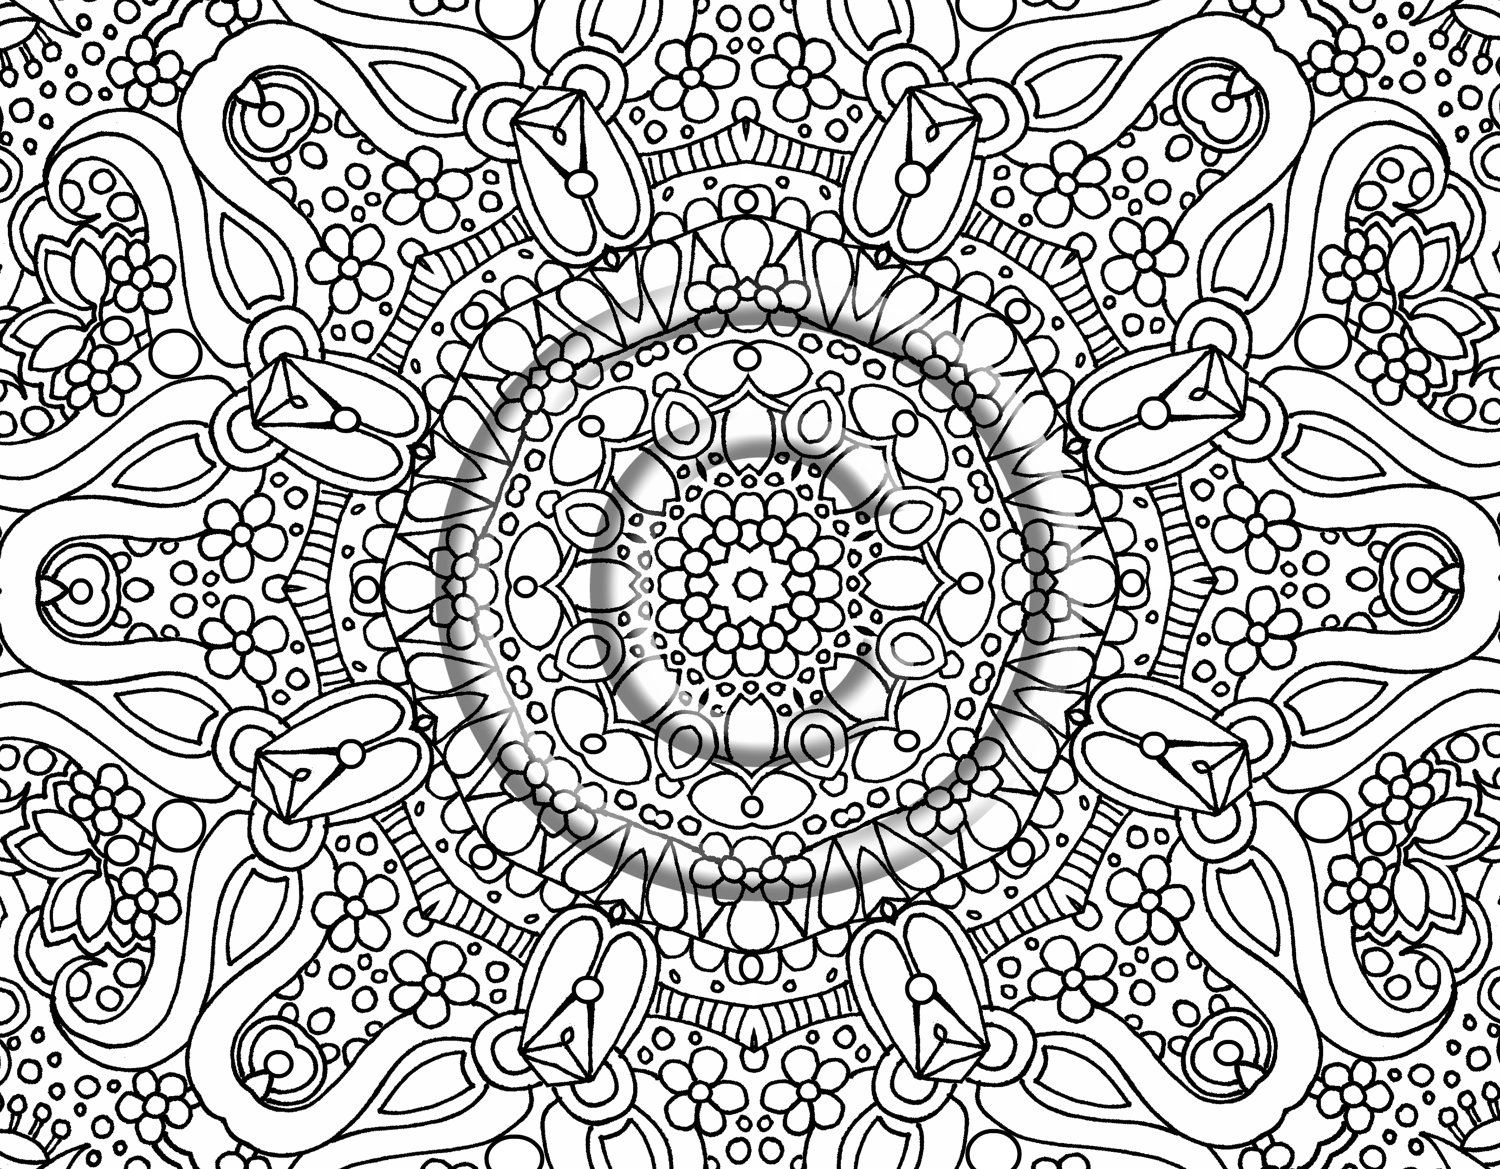 hard coloring pages - Coloring Pages Abstract Printable